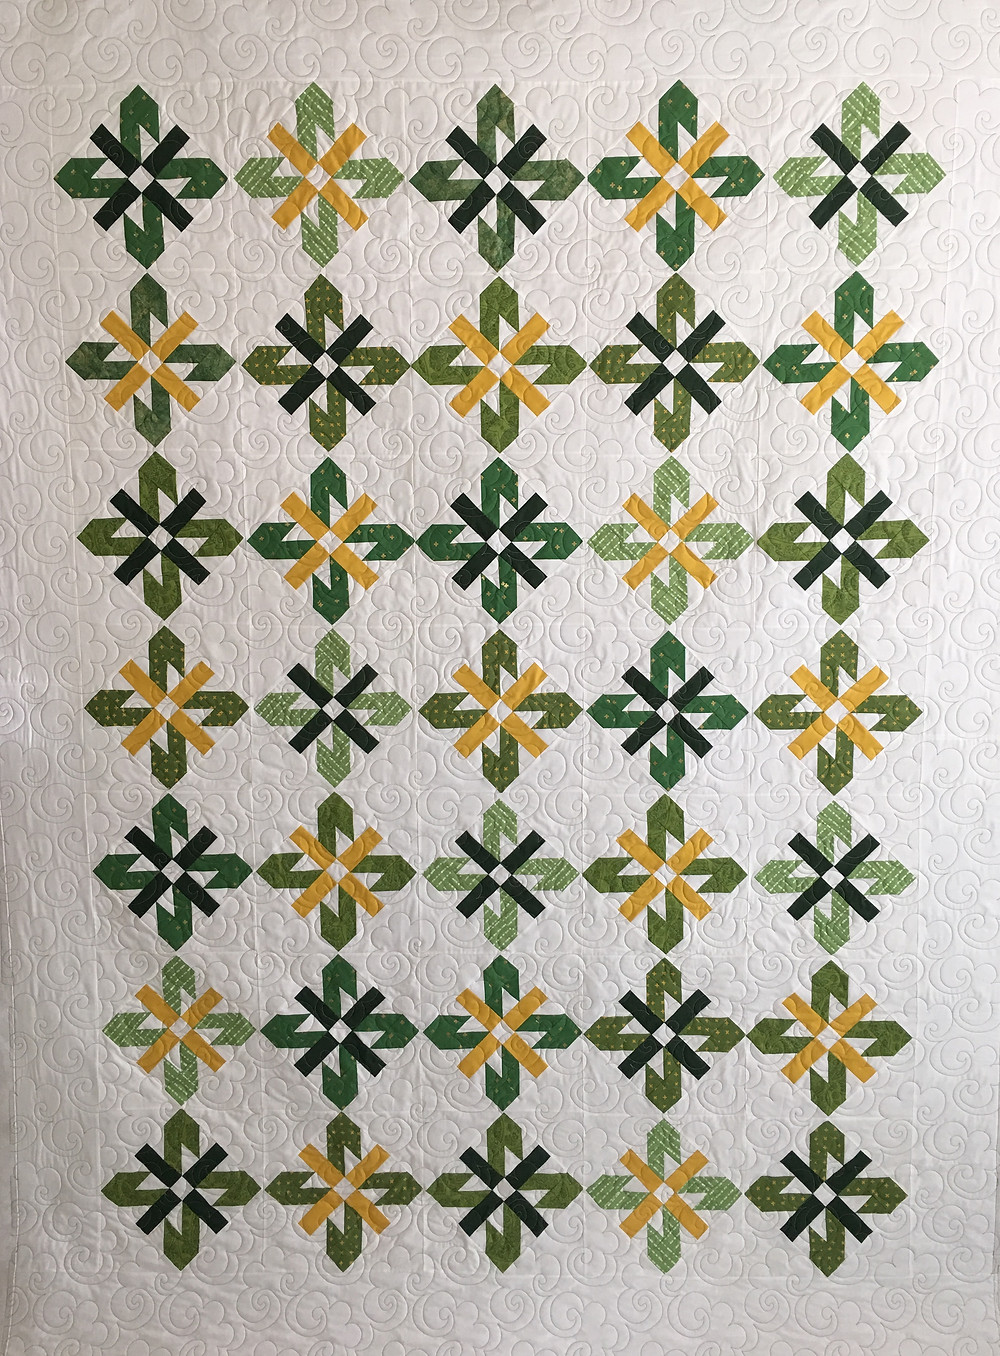 Green and Gold Sunflower quilt by Jocelyn Ueng